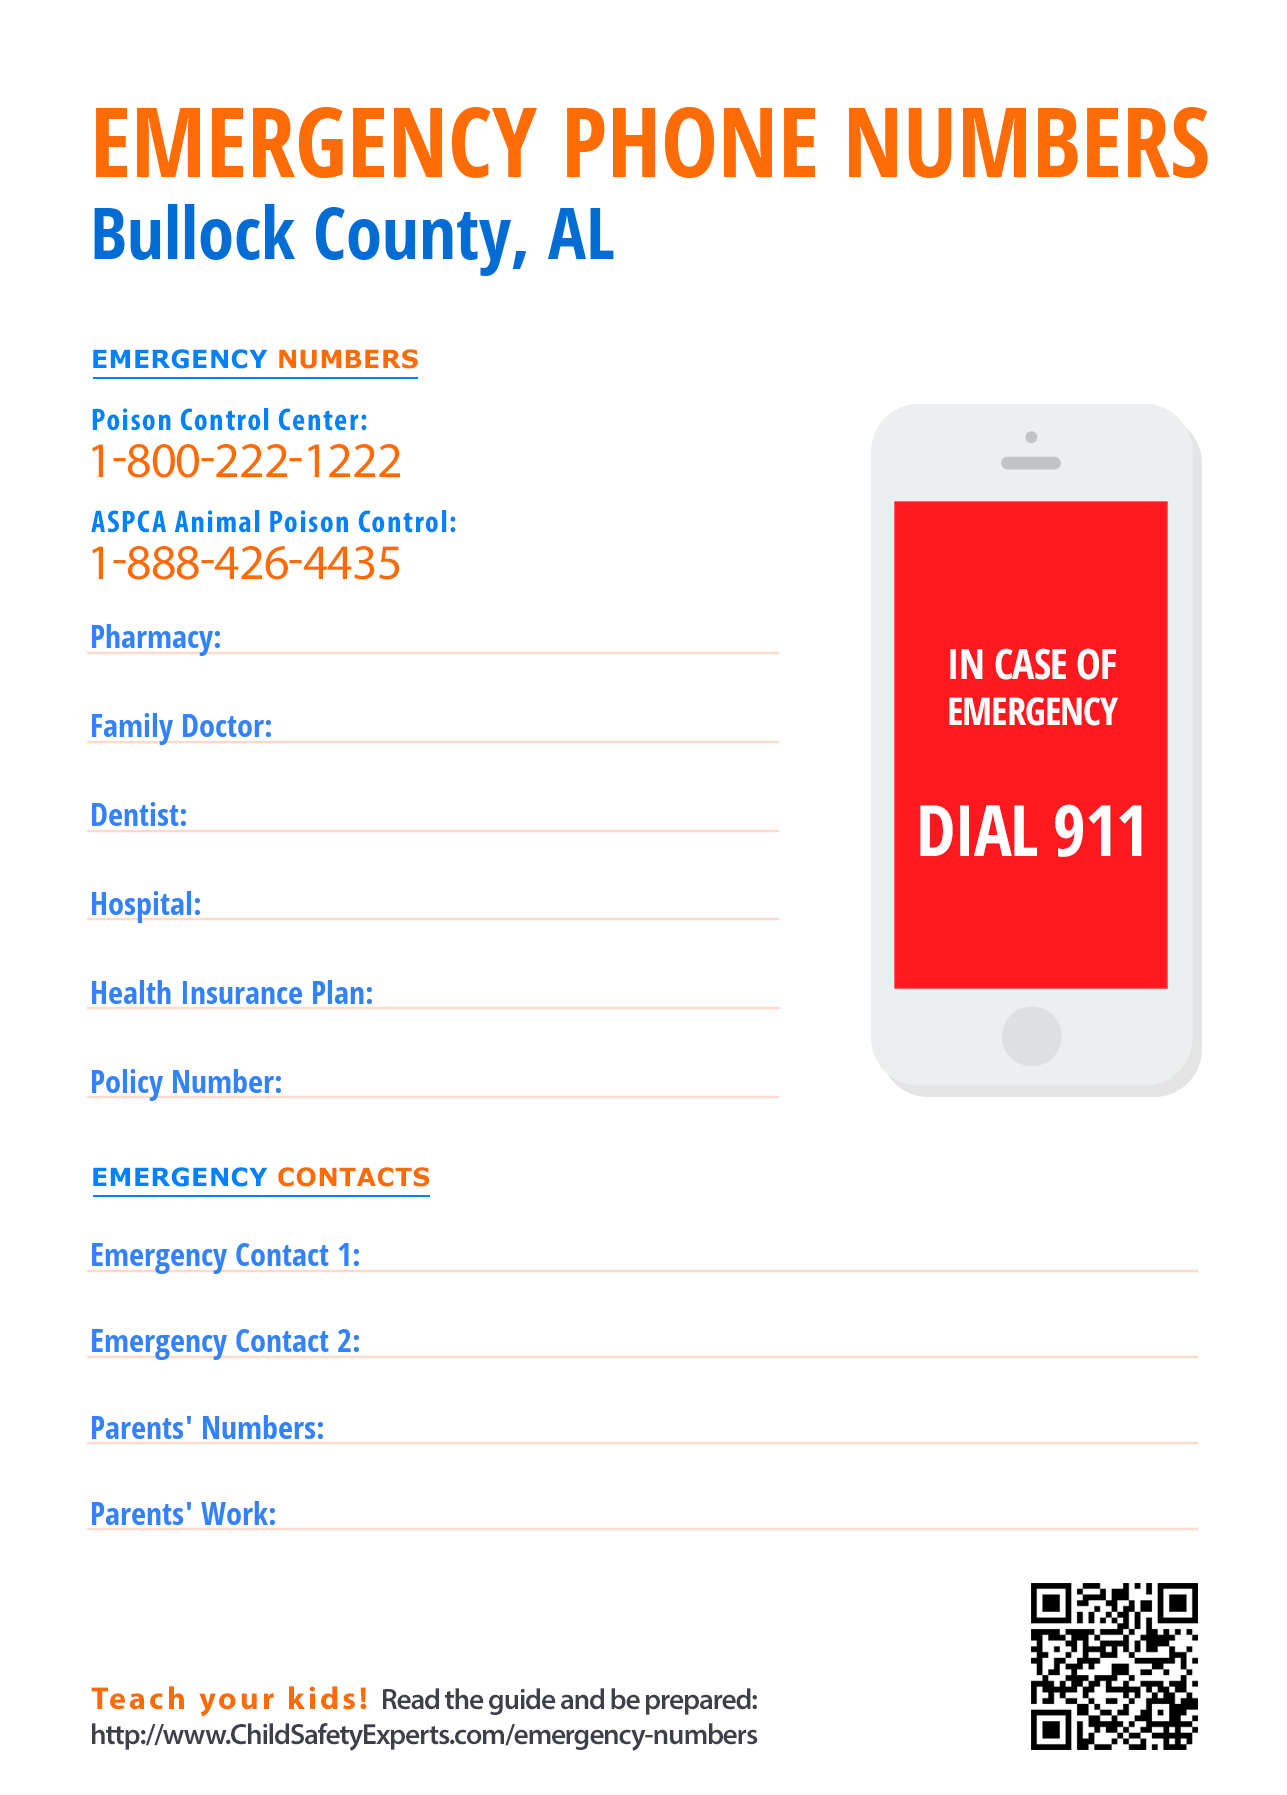 Important emergency phone numbers in Bullock County, Alabama